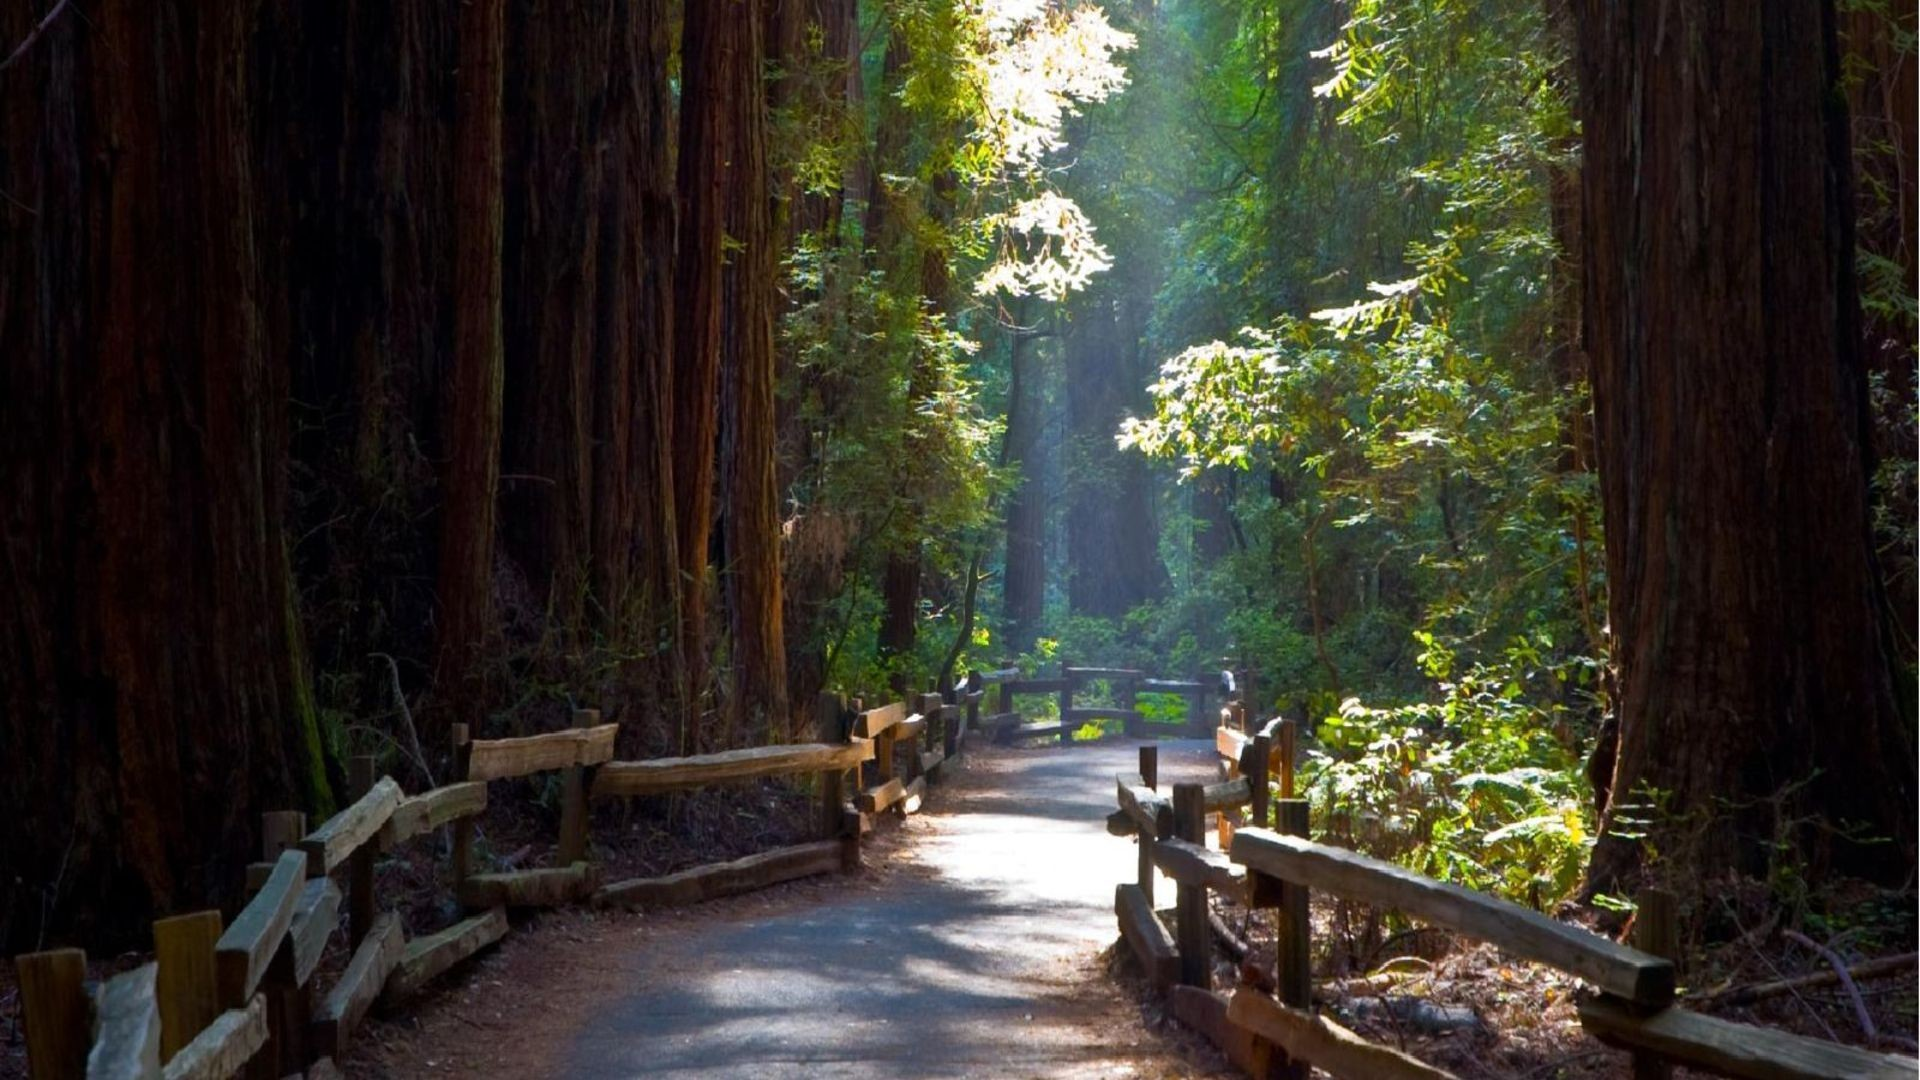 1920x1080 Path in the Redwoods, laptop photos, HD mob